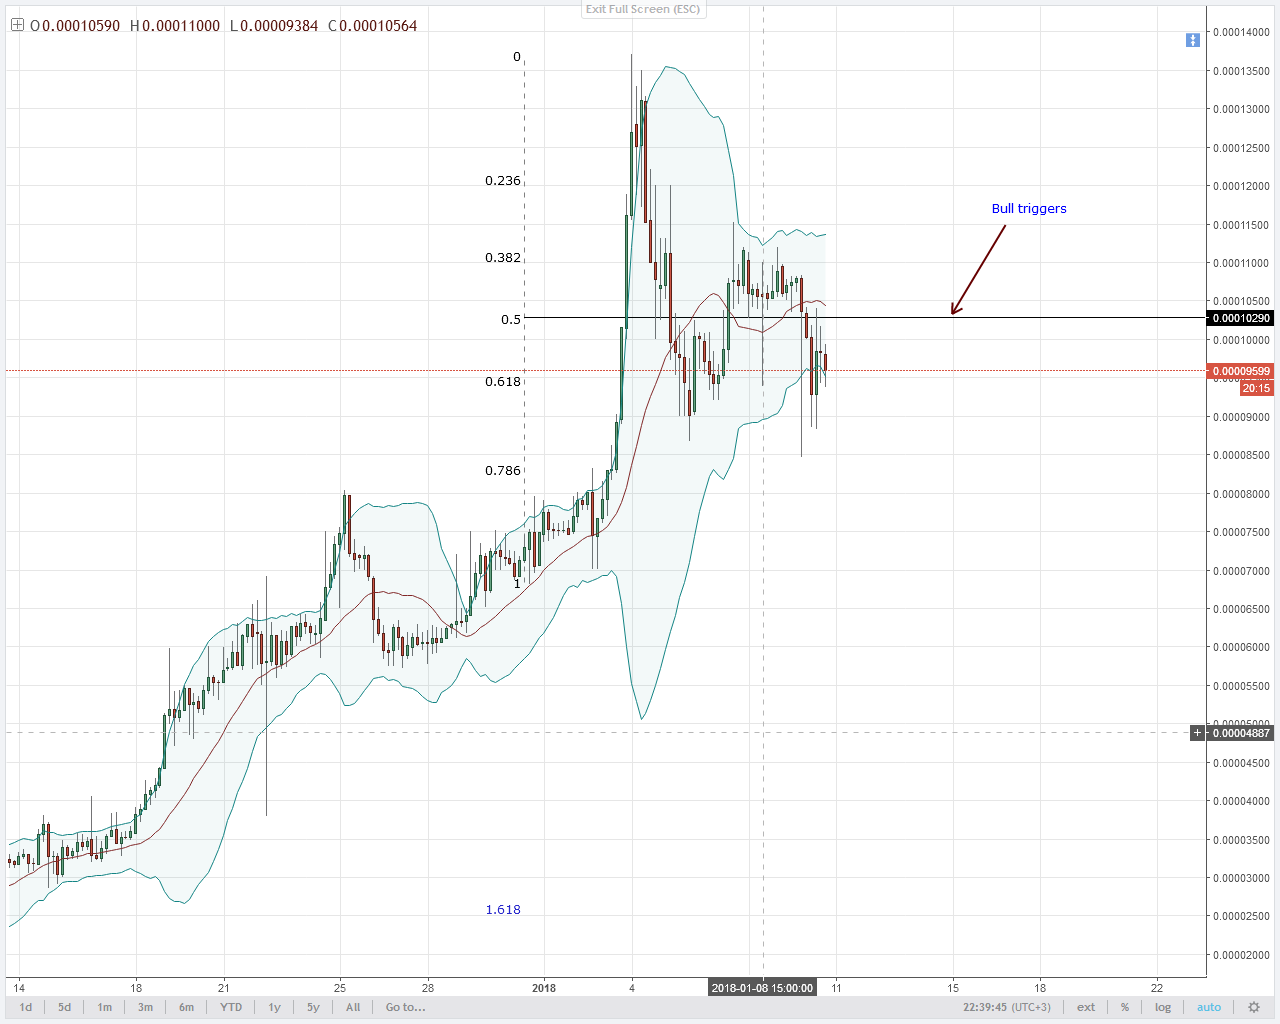 0.00025 BTC IS IOTA'S MINOR RESISTANCE LINE AND A POTENTIAL BULL TRIGGER